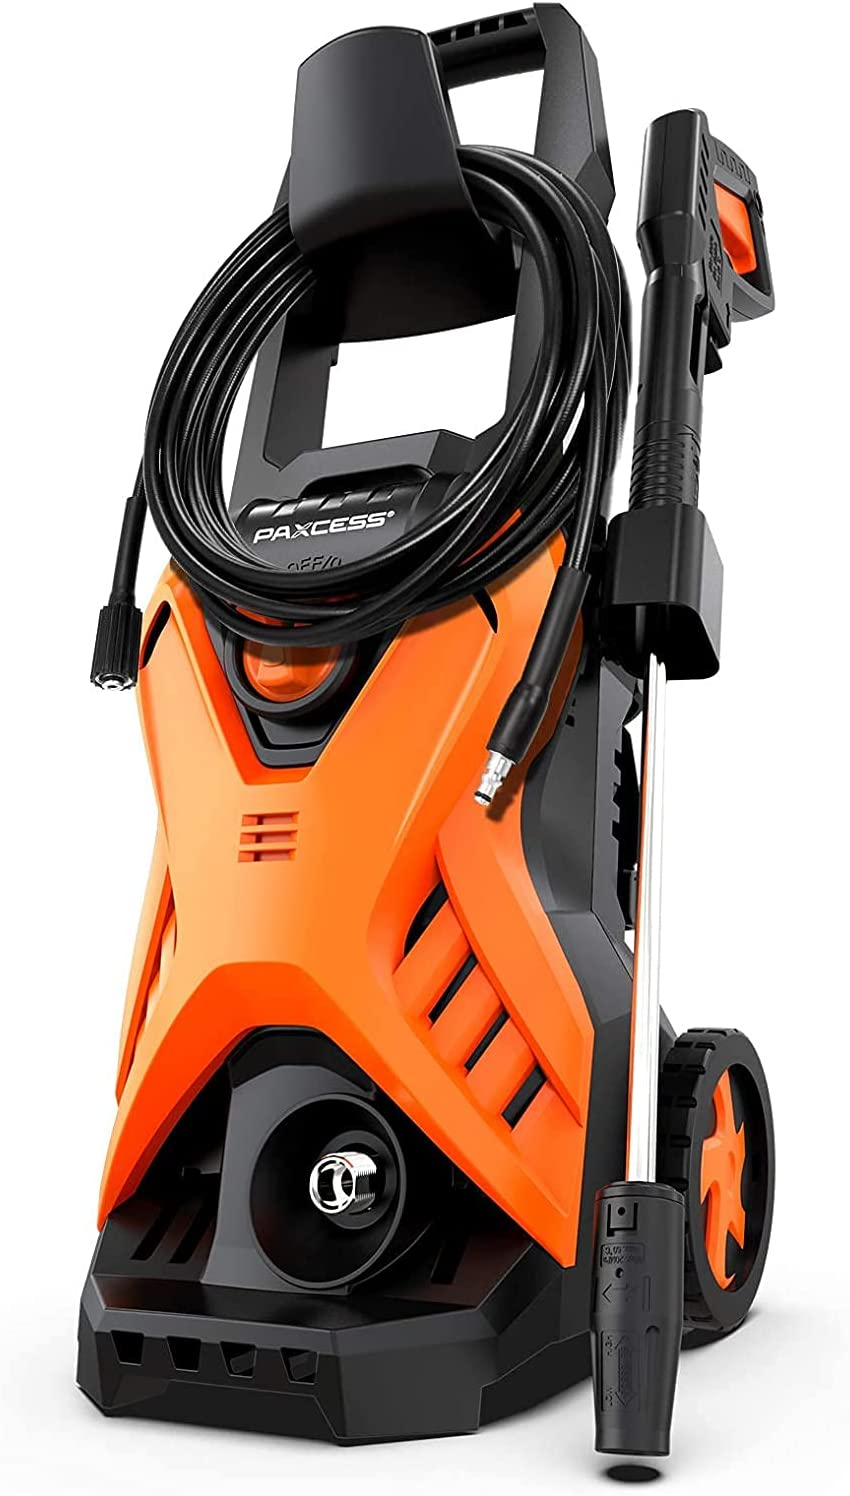 Paxcess  1.66 GPM 2300 PSI  Electric Power Washer $79.99 Coupon